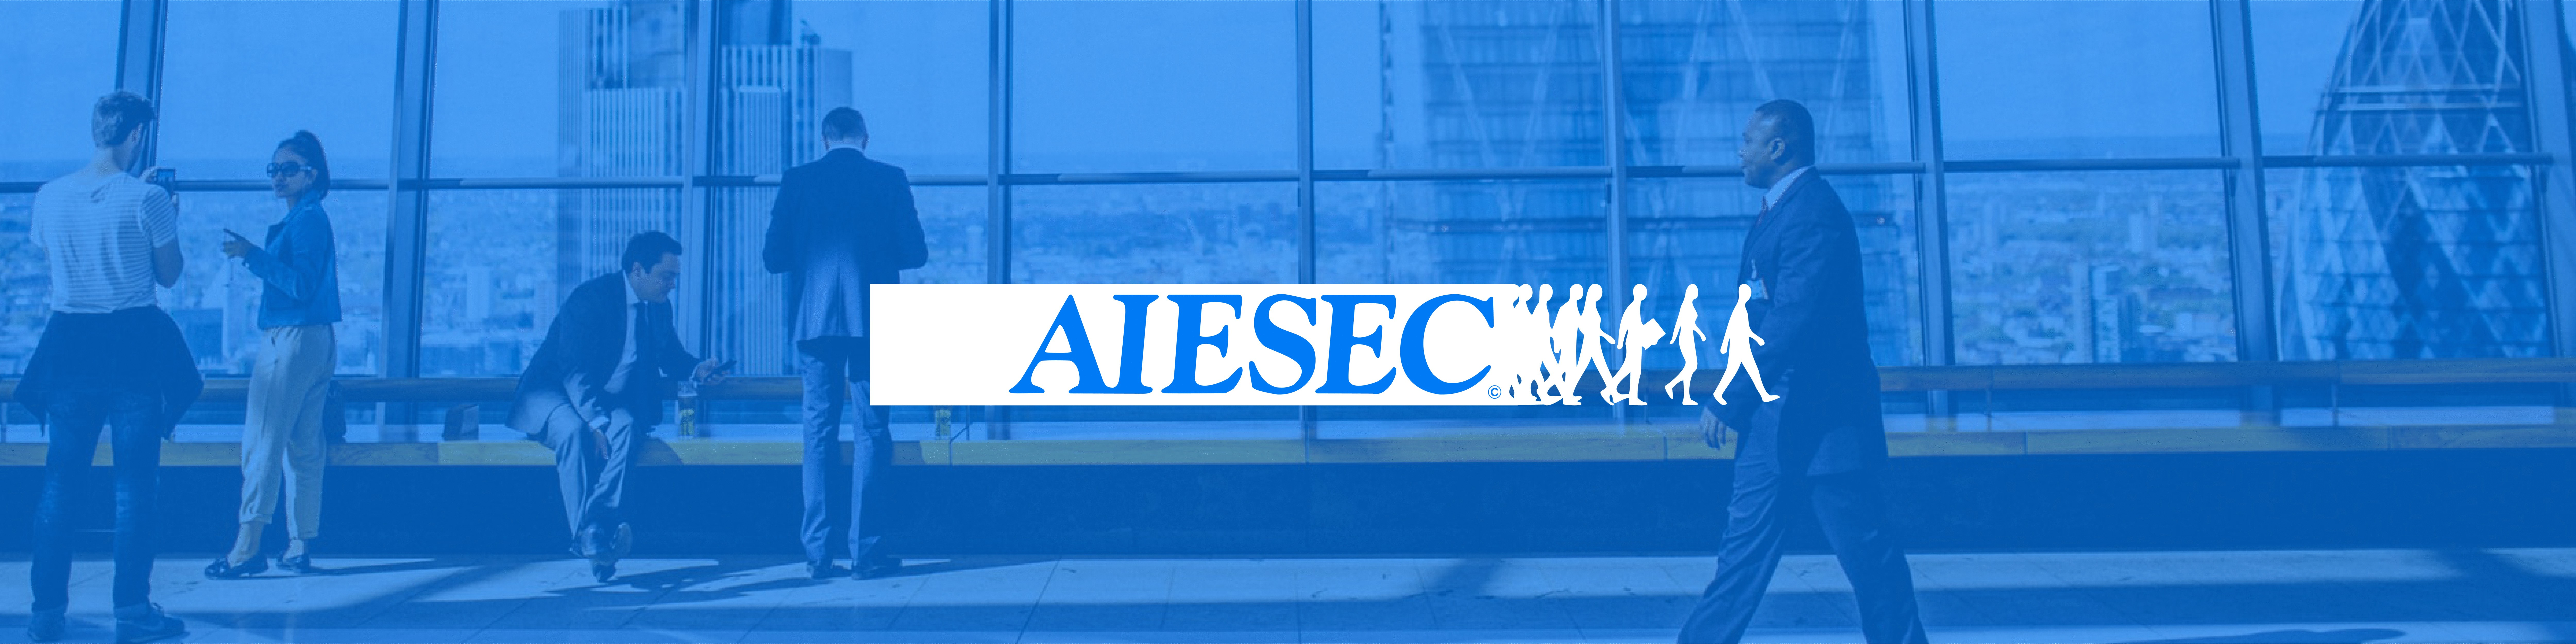 AIESEC in Egypt | LinkedIn